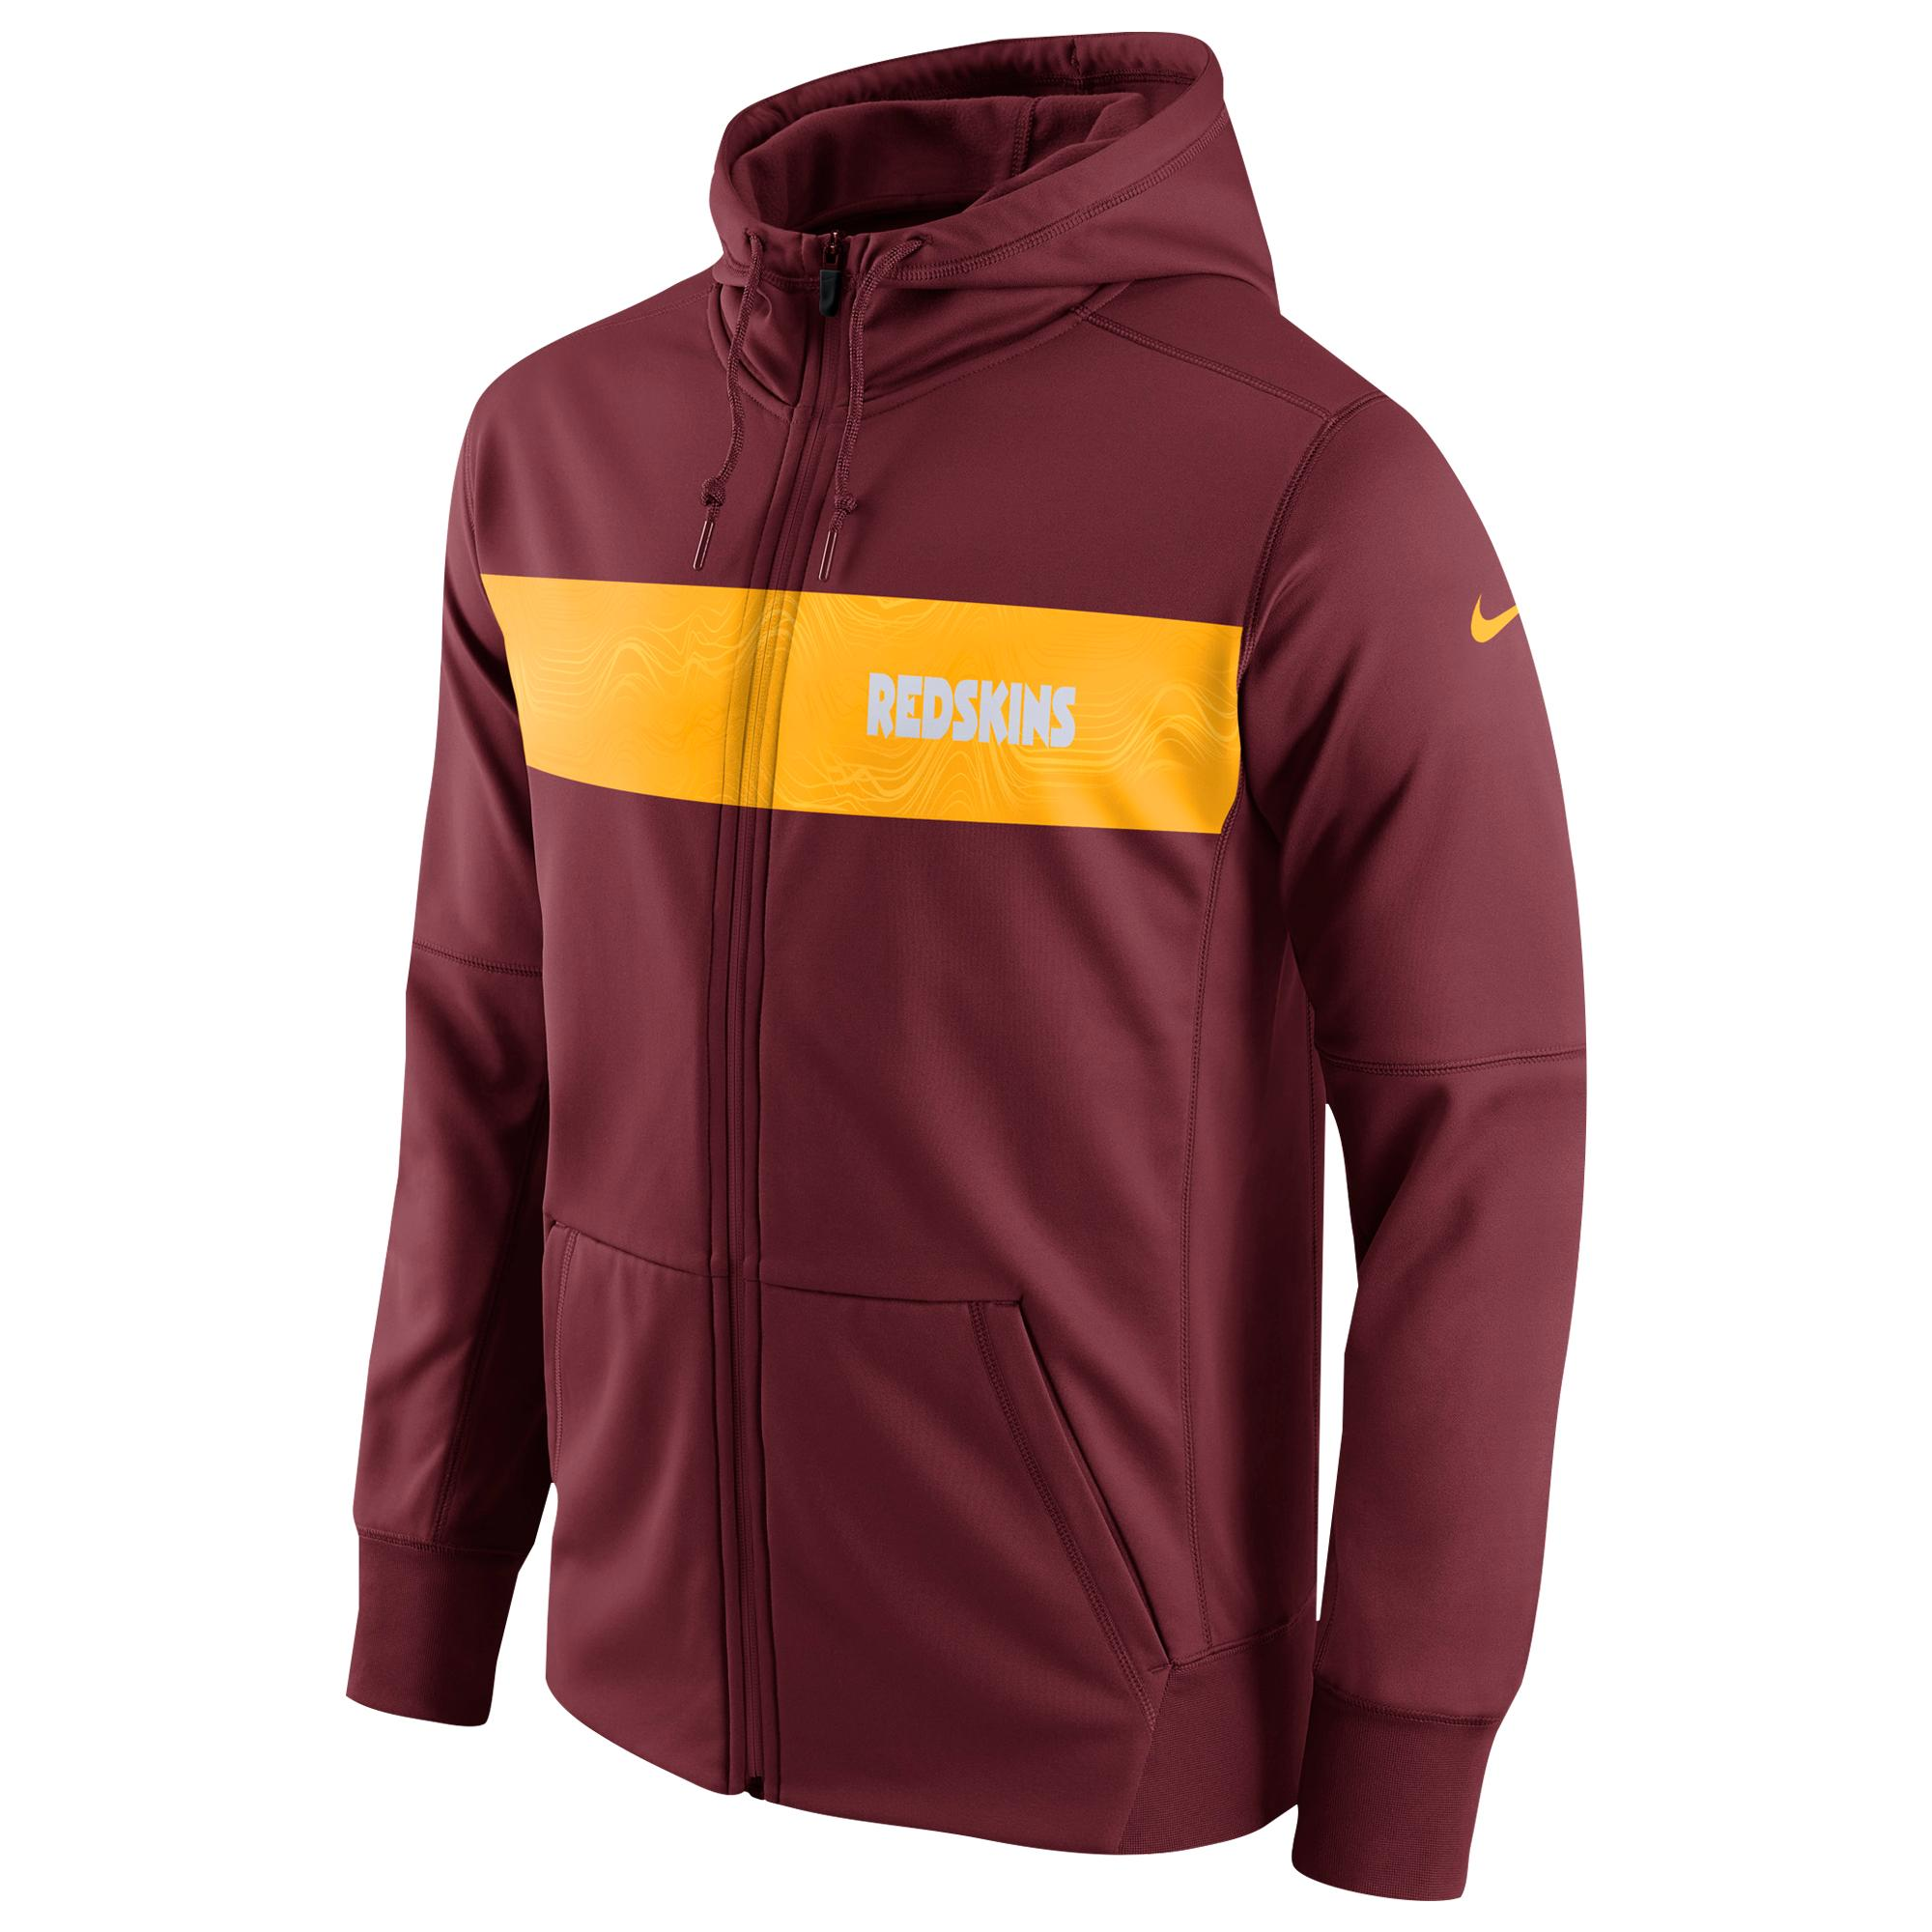 44b29947 Nike Washington Redskins Nfl Sideline Therma Seismic Fz Hoodie in ...